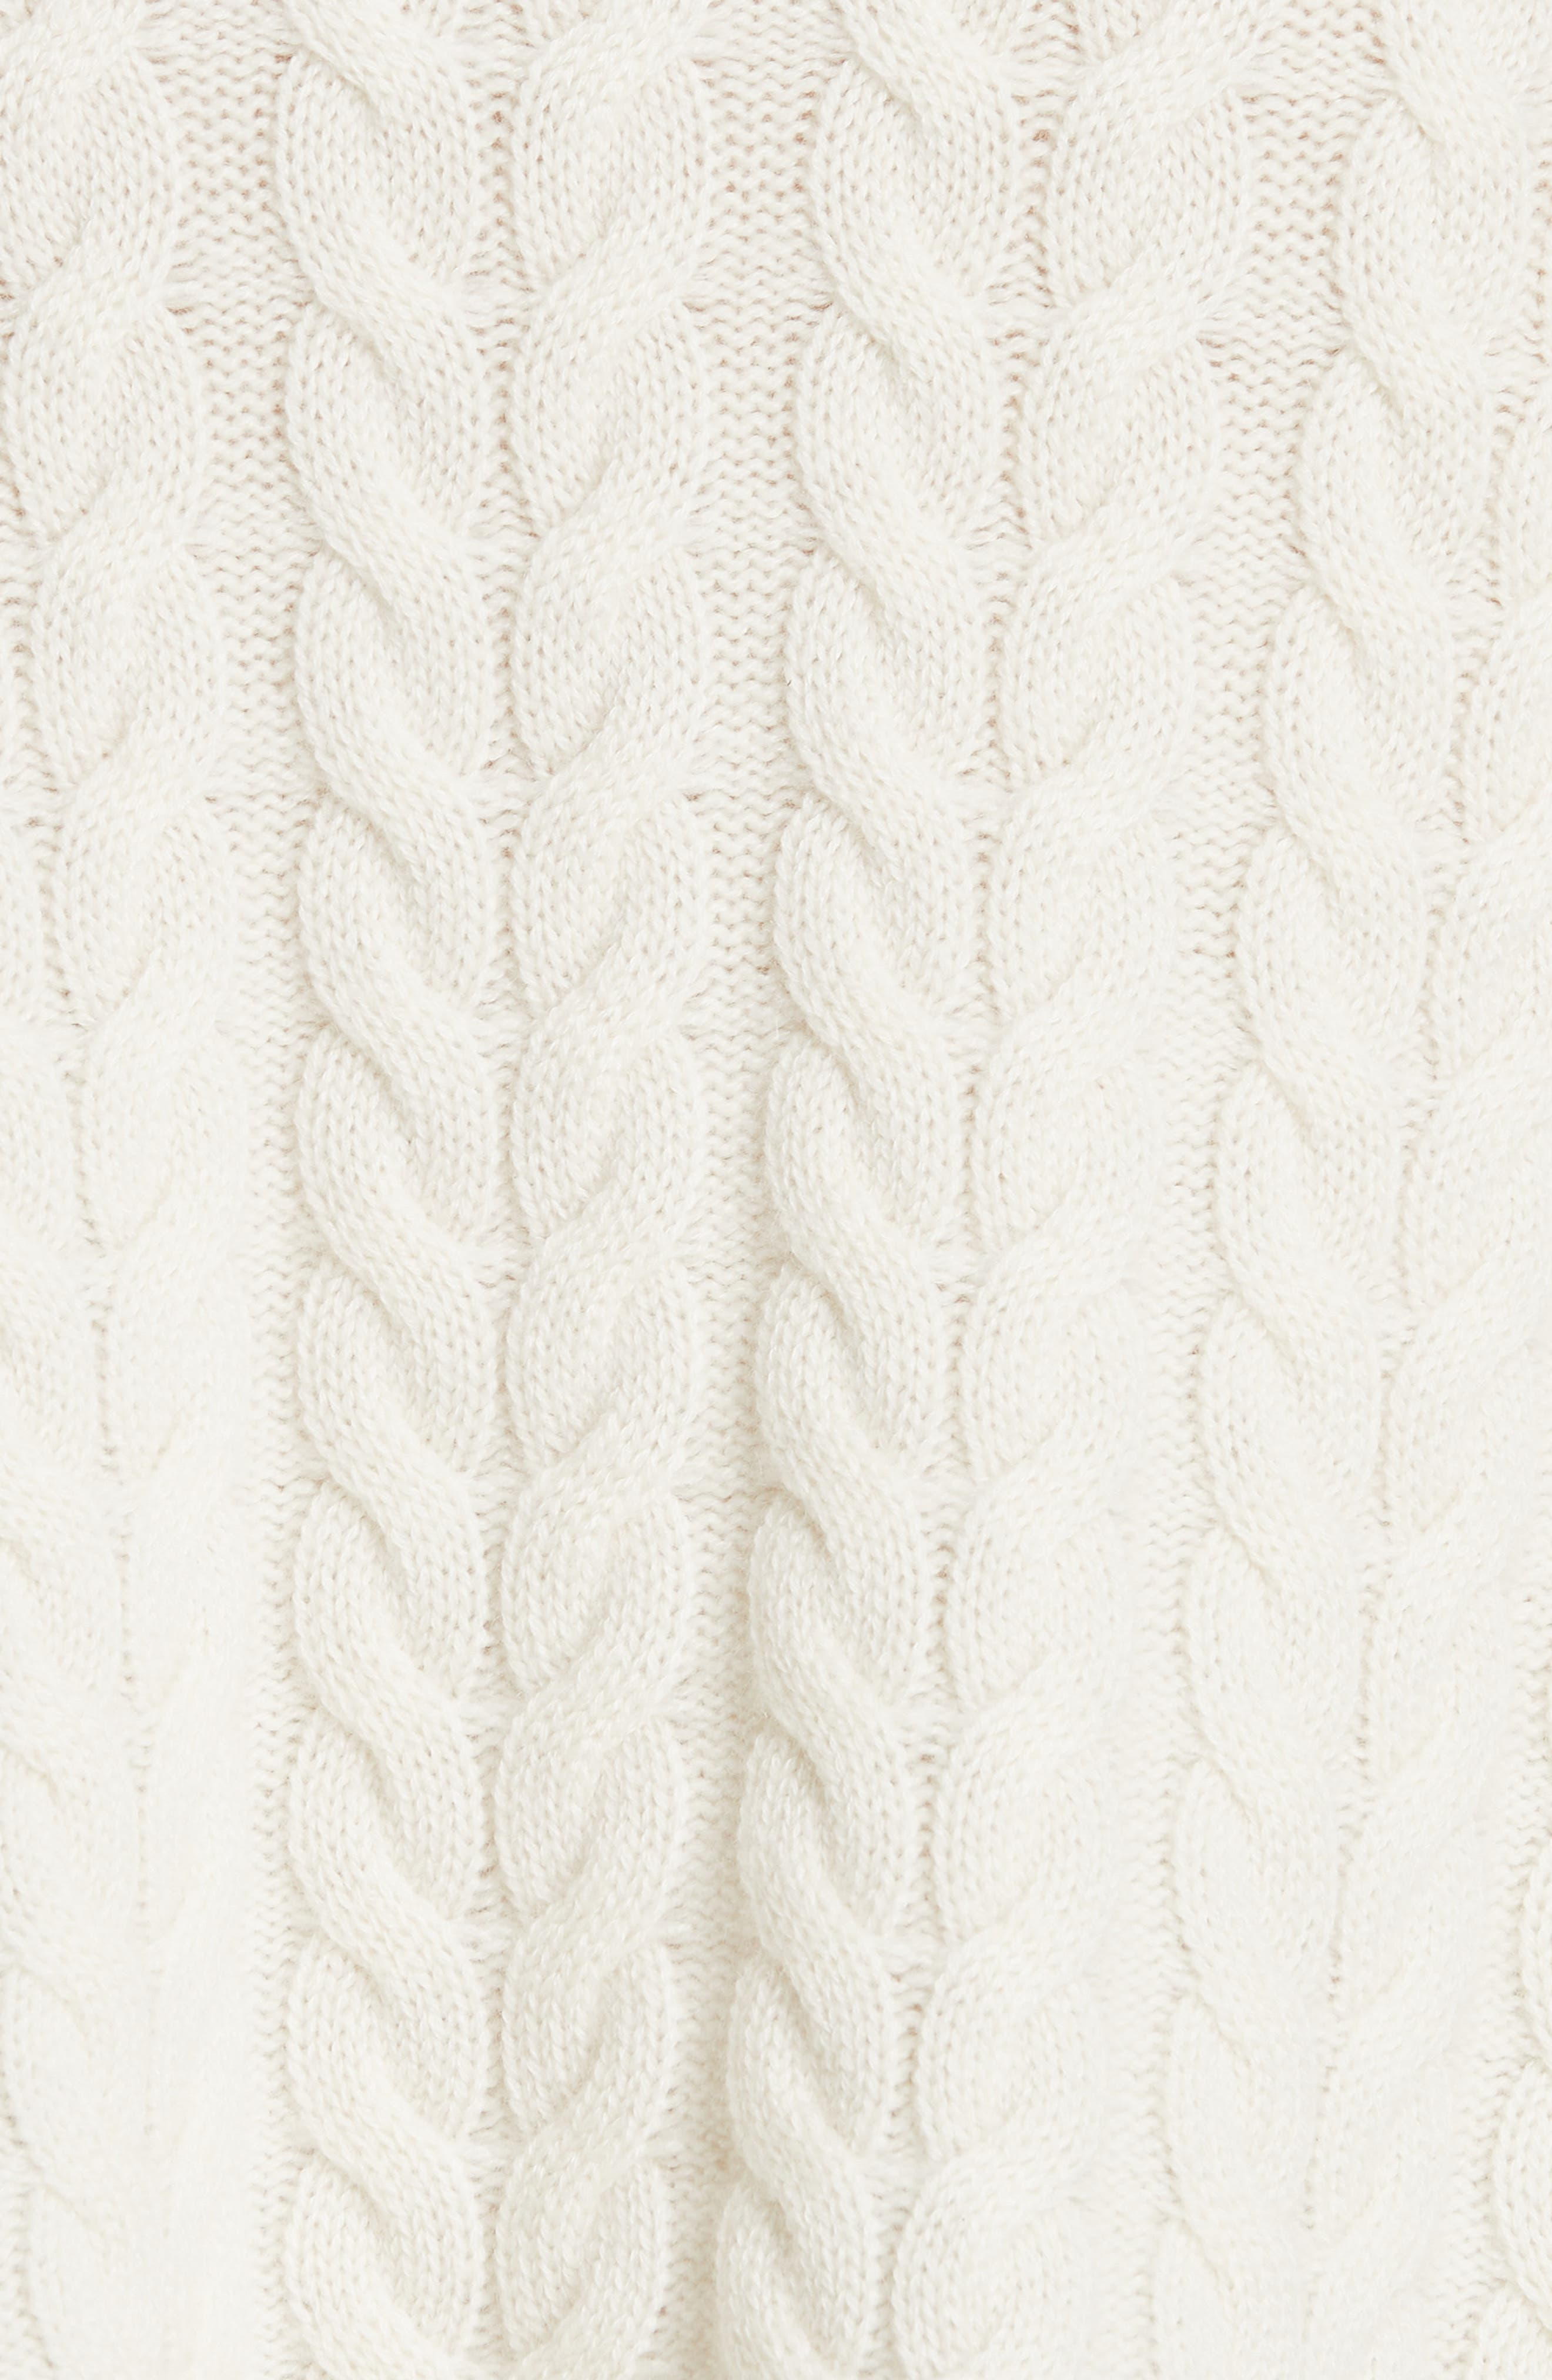 Cable Cashmere Sweater,                             Alternate thumbnail 5, color,                             IVORY/ IVORY